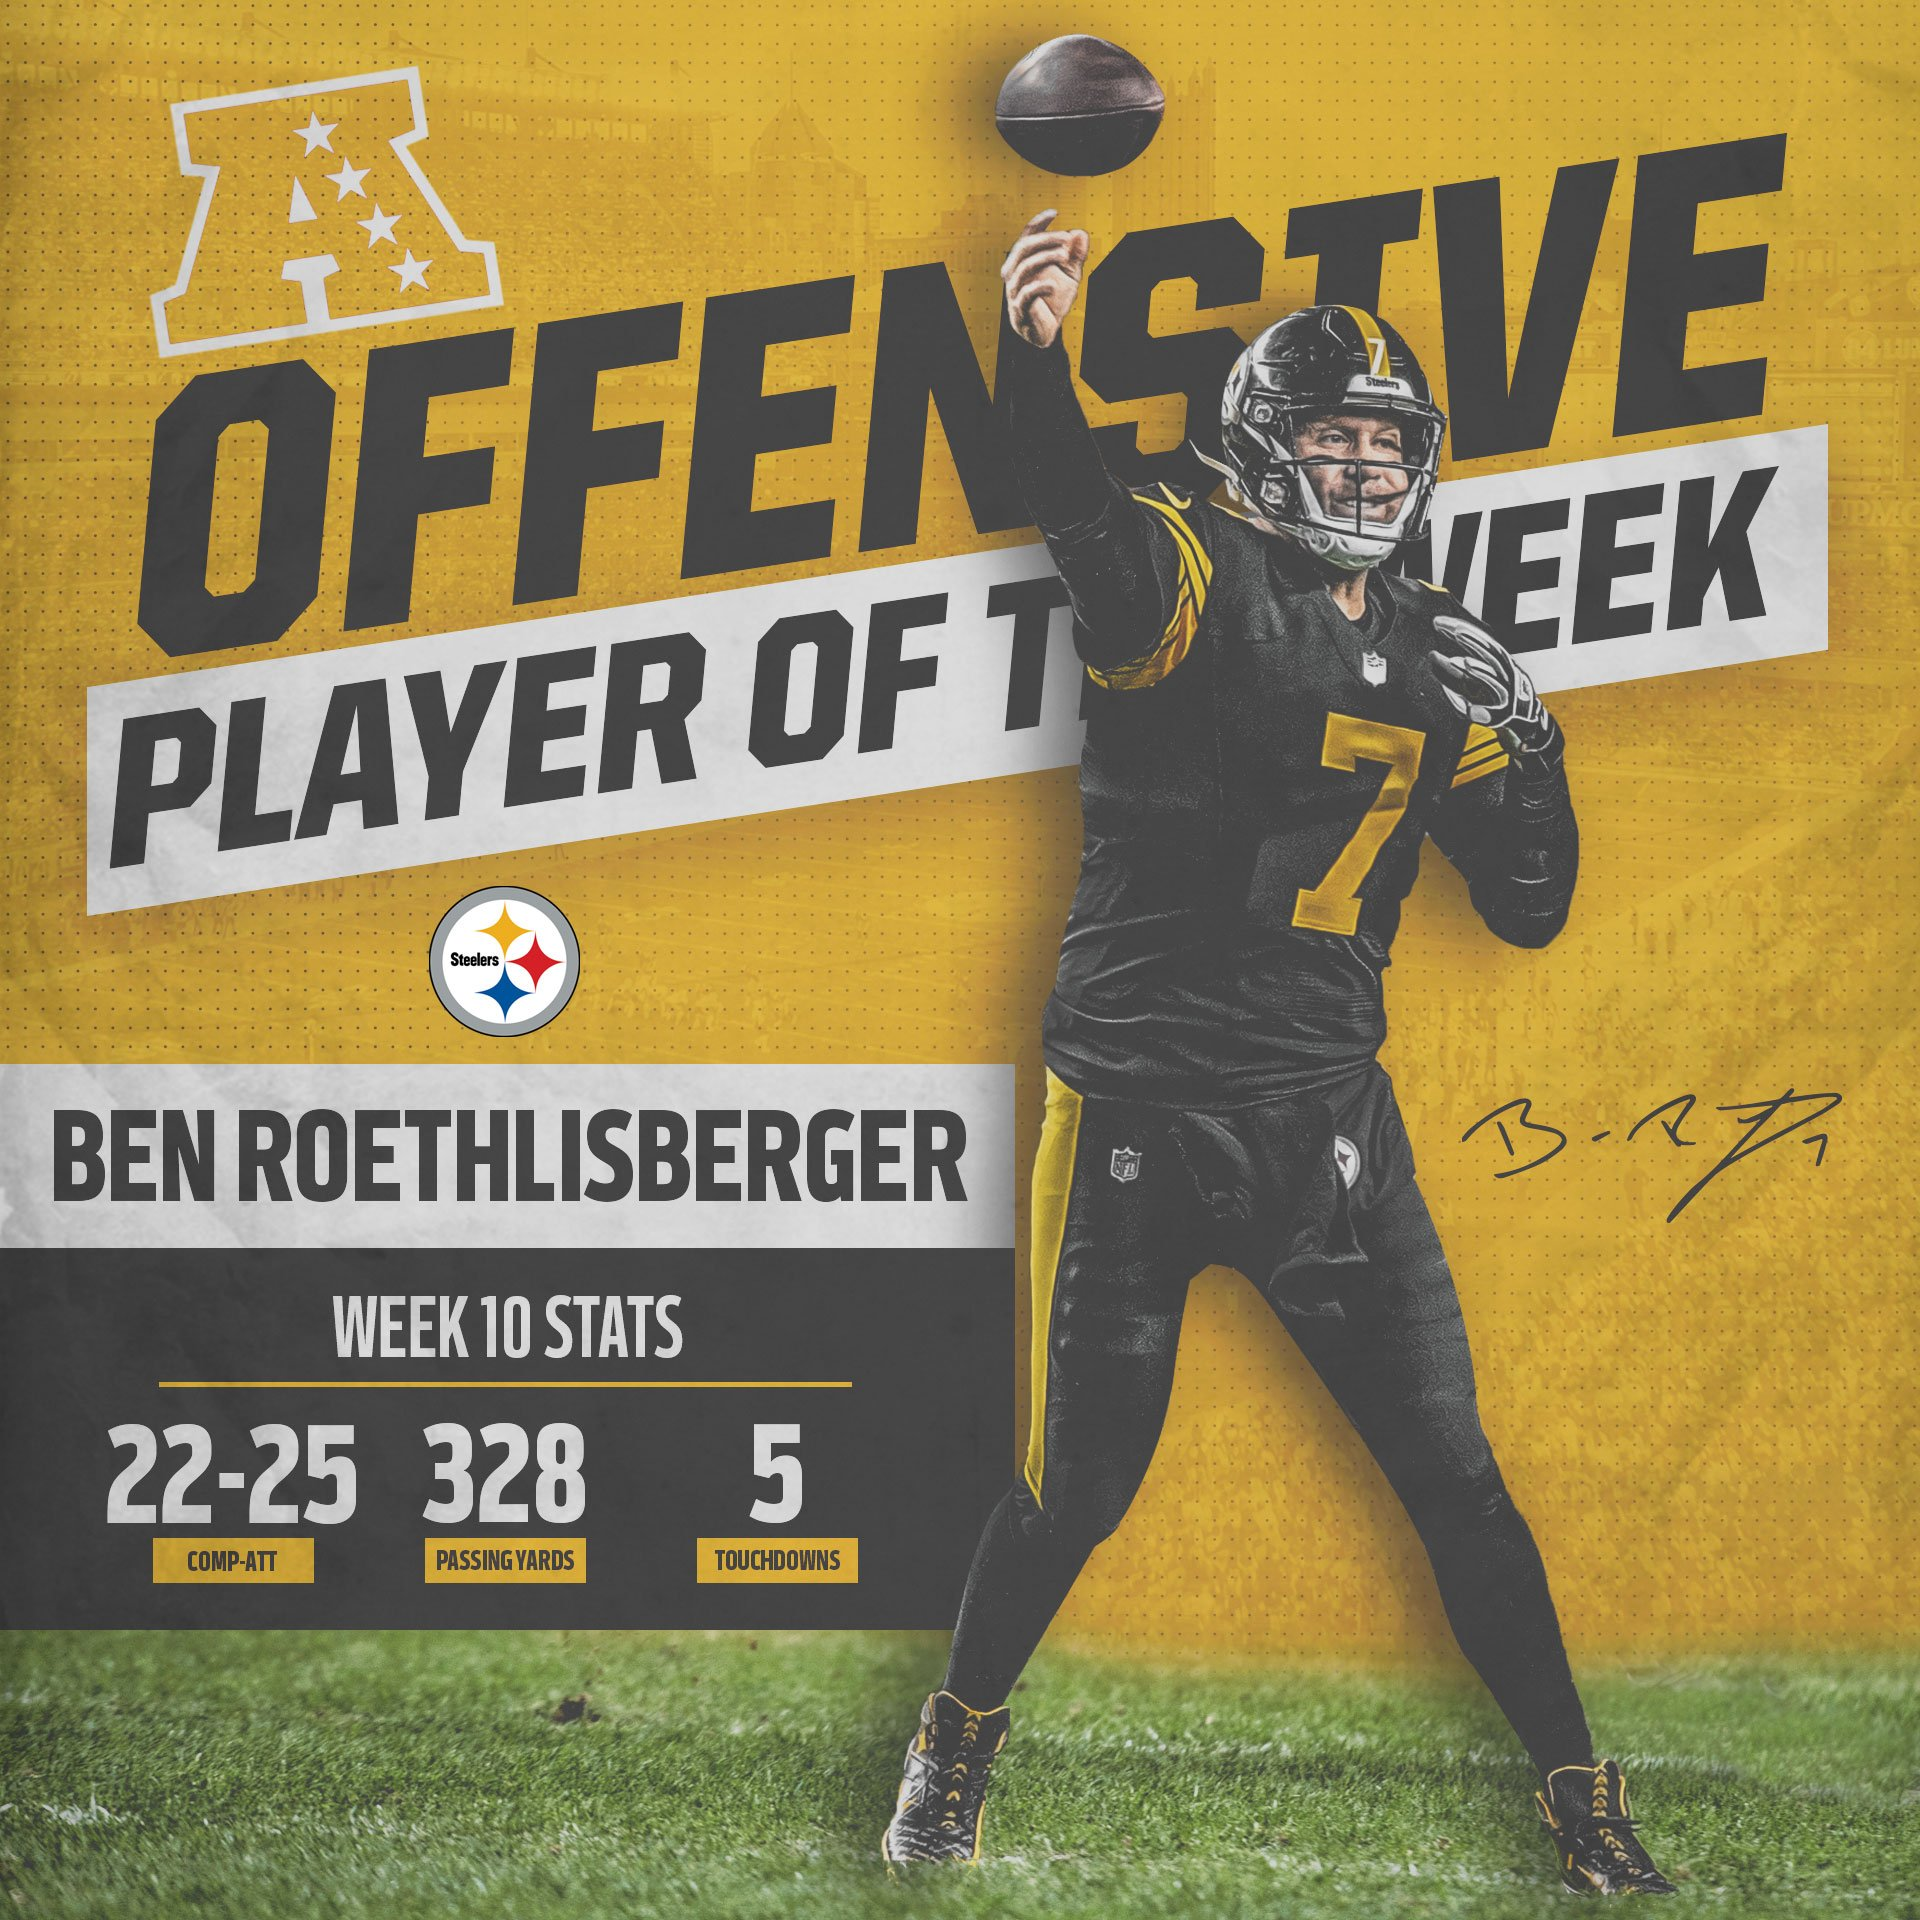 Ben Roethlisberger has been named AFC Offensive Player of the Week. ��  MORE: https://t.co/nqVW40iXnO https://t.co/RMYQWAMOC7